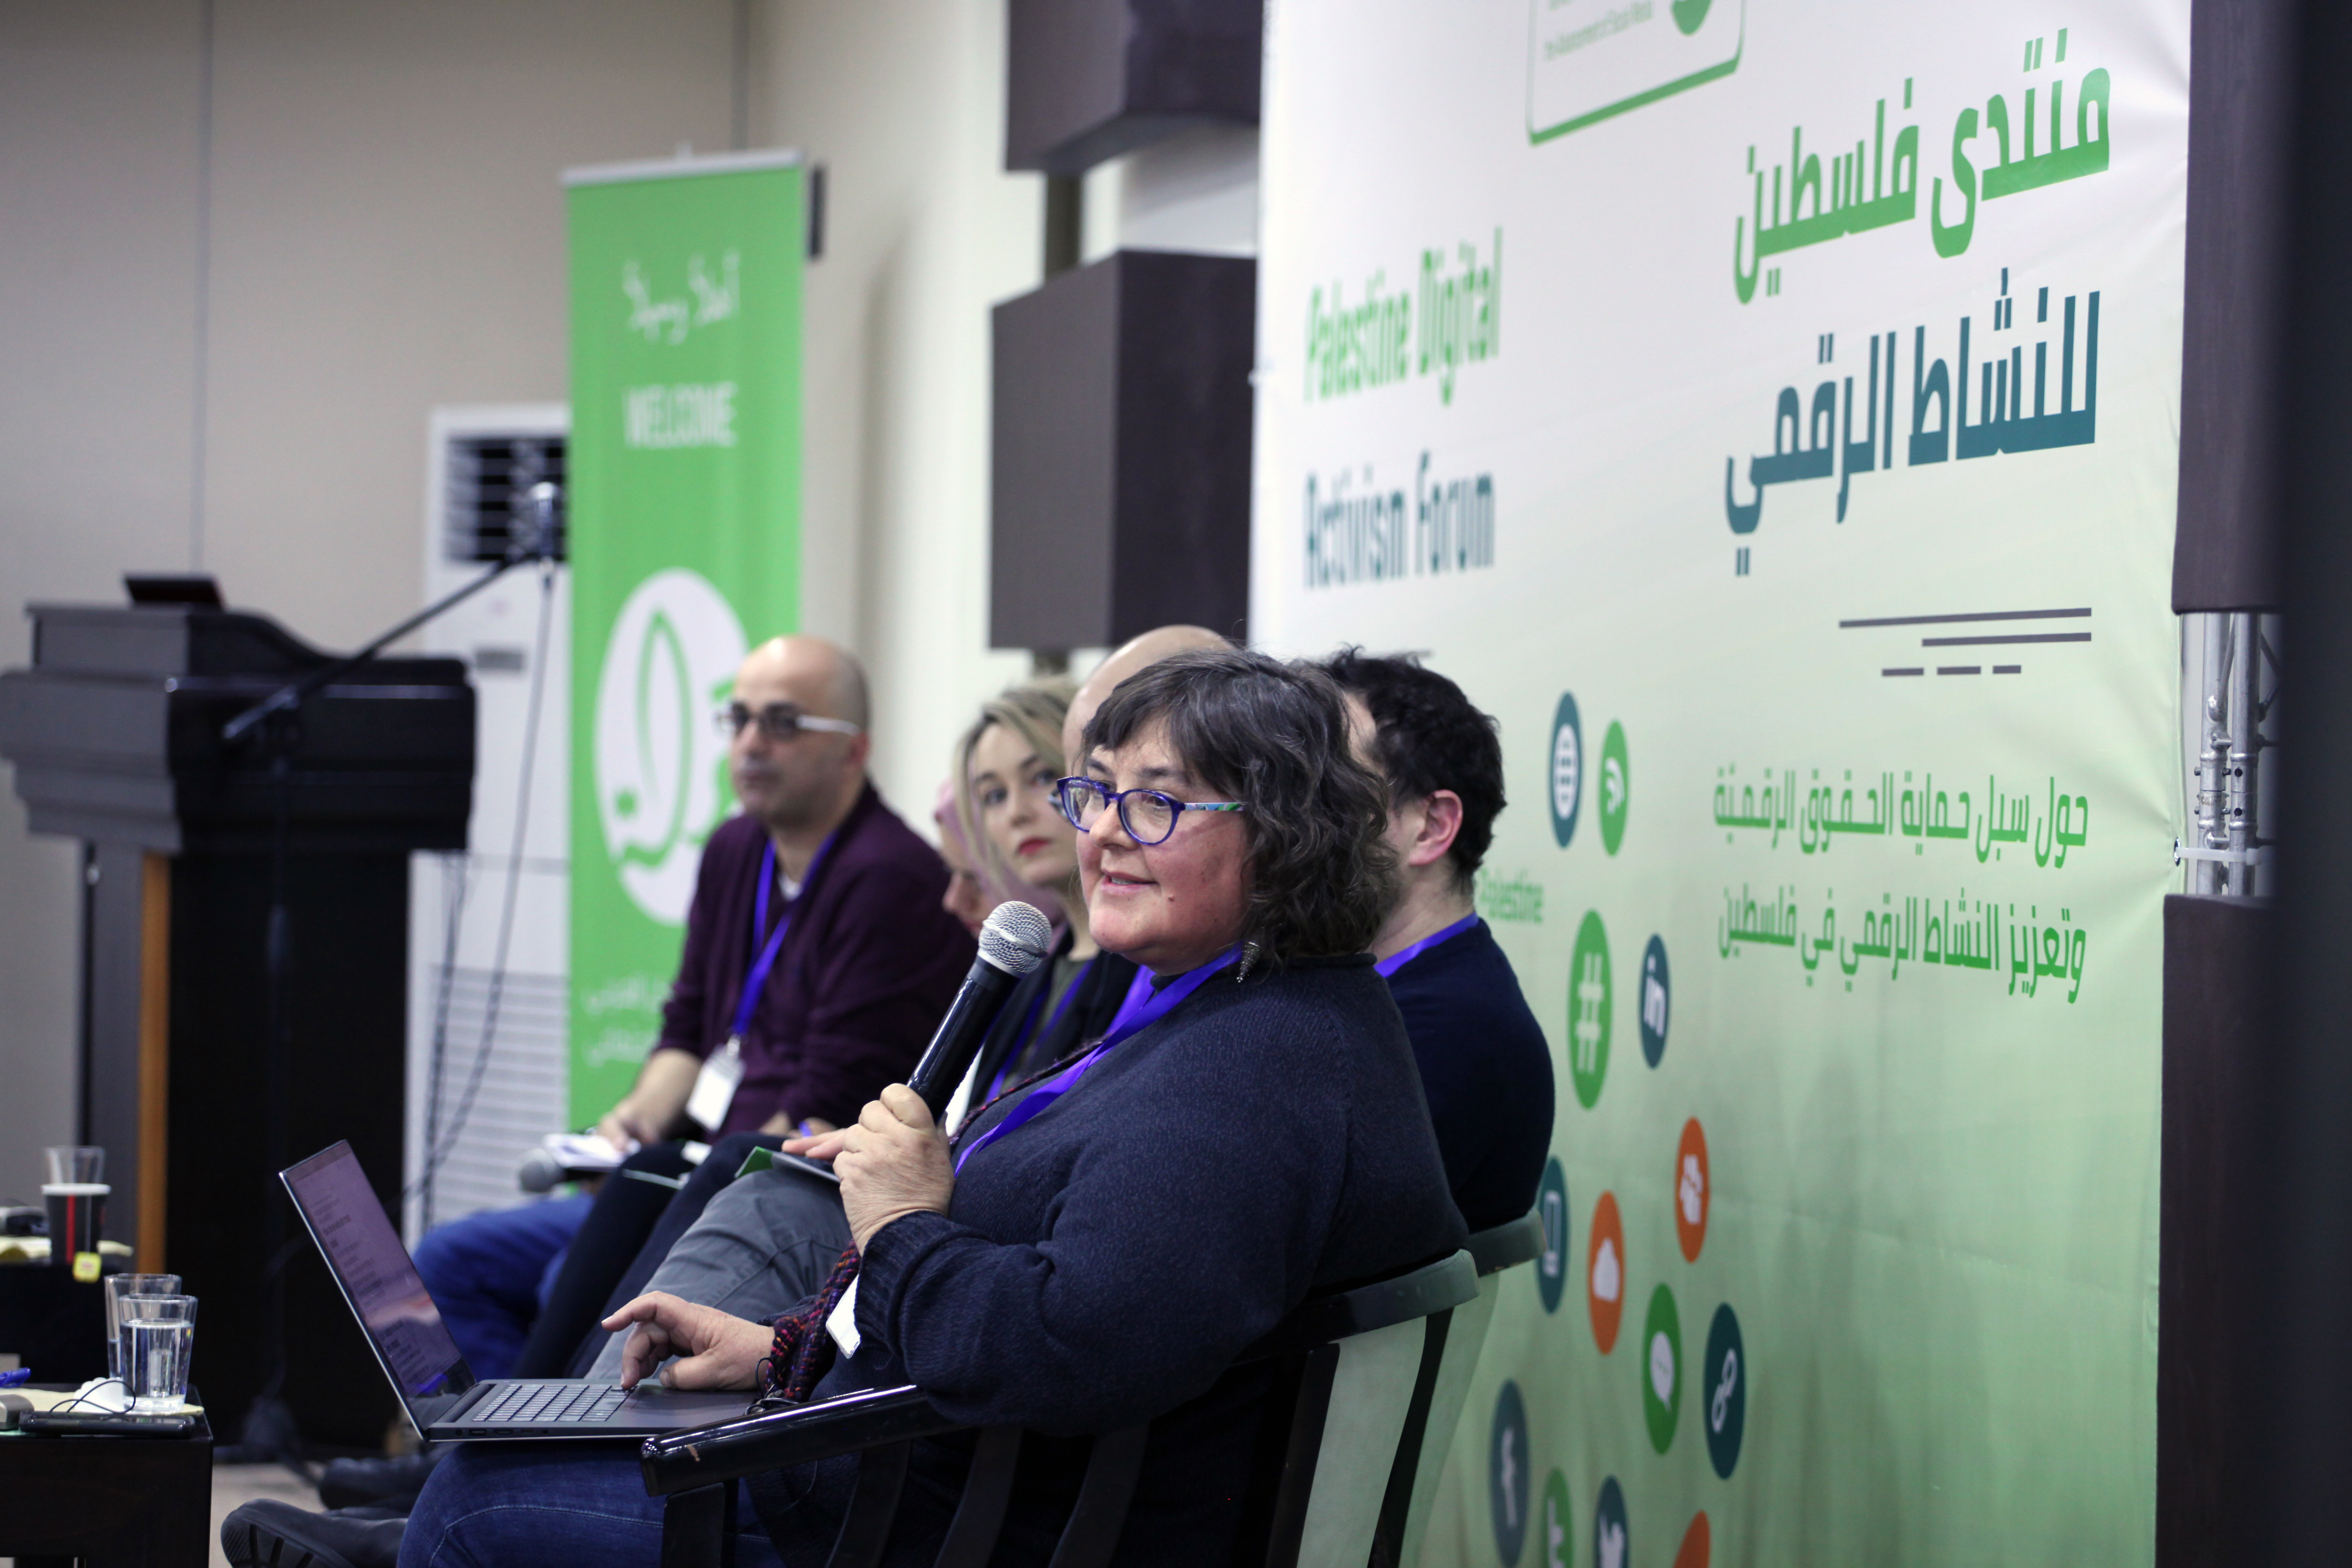 Human rights defender and computer networking pioneer Anriette Esterhuysen speaks at 7amleh's Palestine Digital Activism Forum, Ramallah, West Bank, January 18, 2018. (Courtesy of 7amleh)